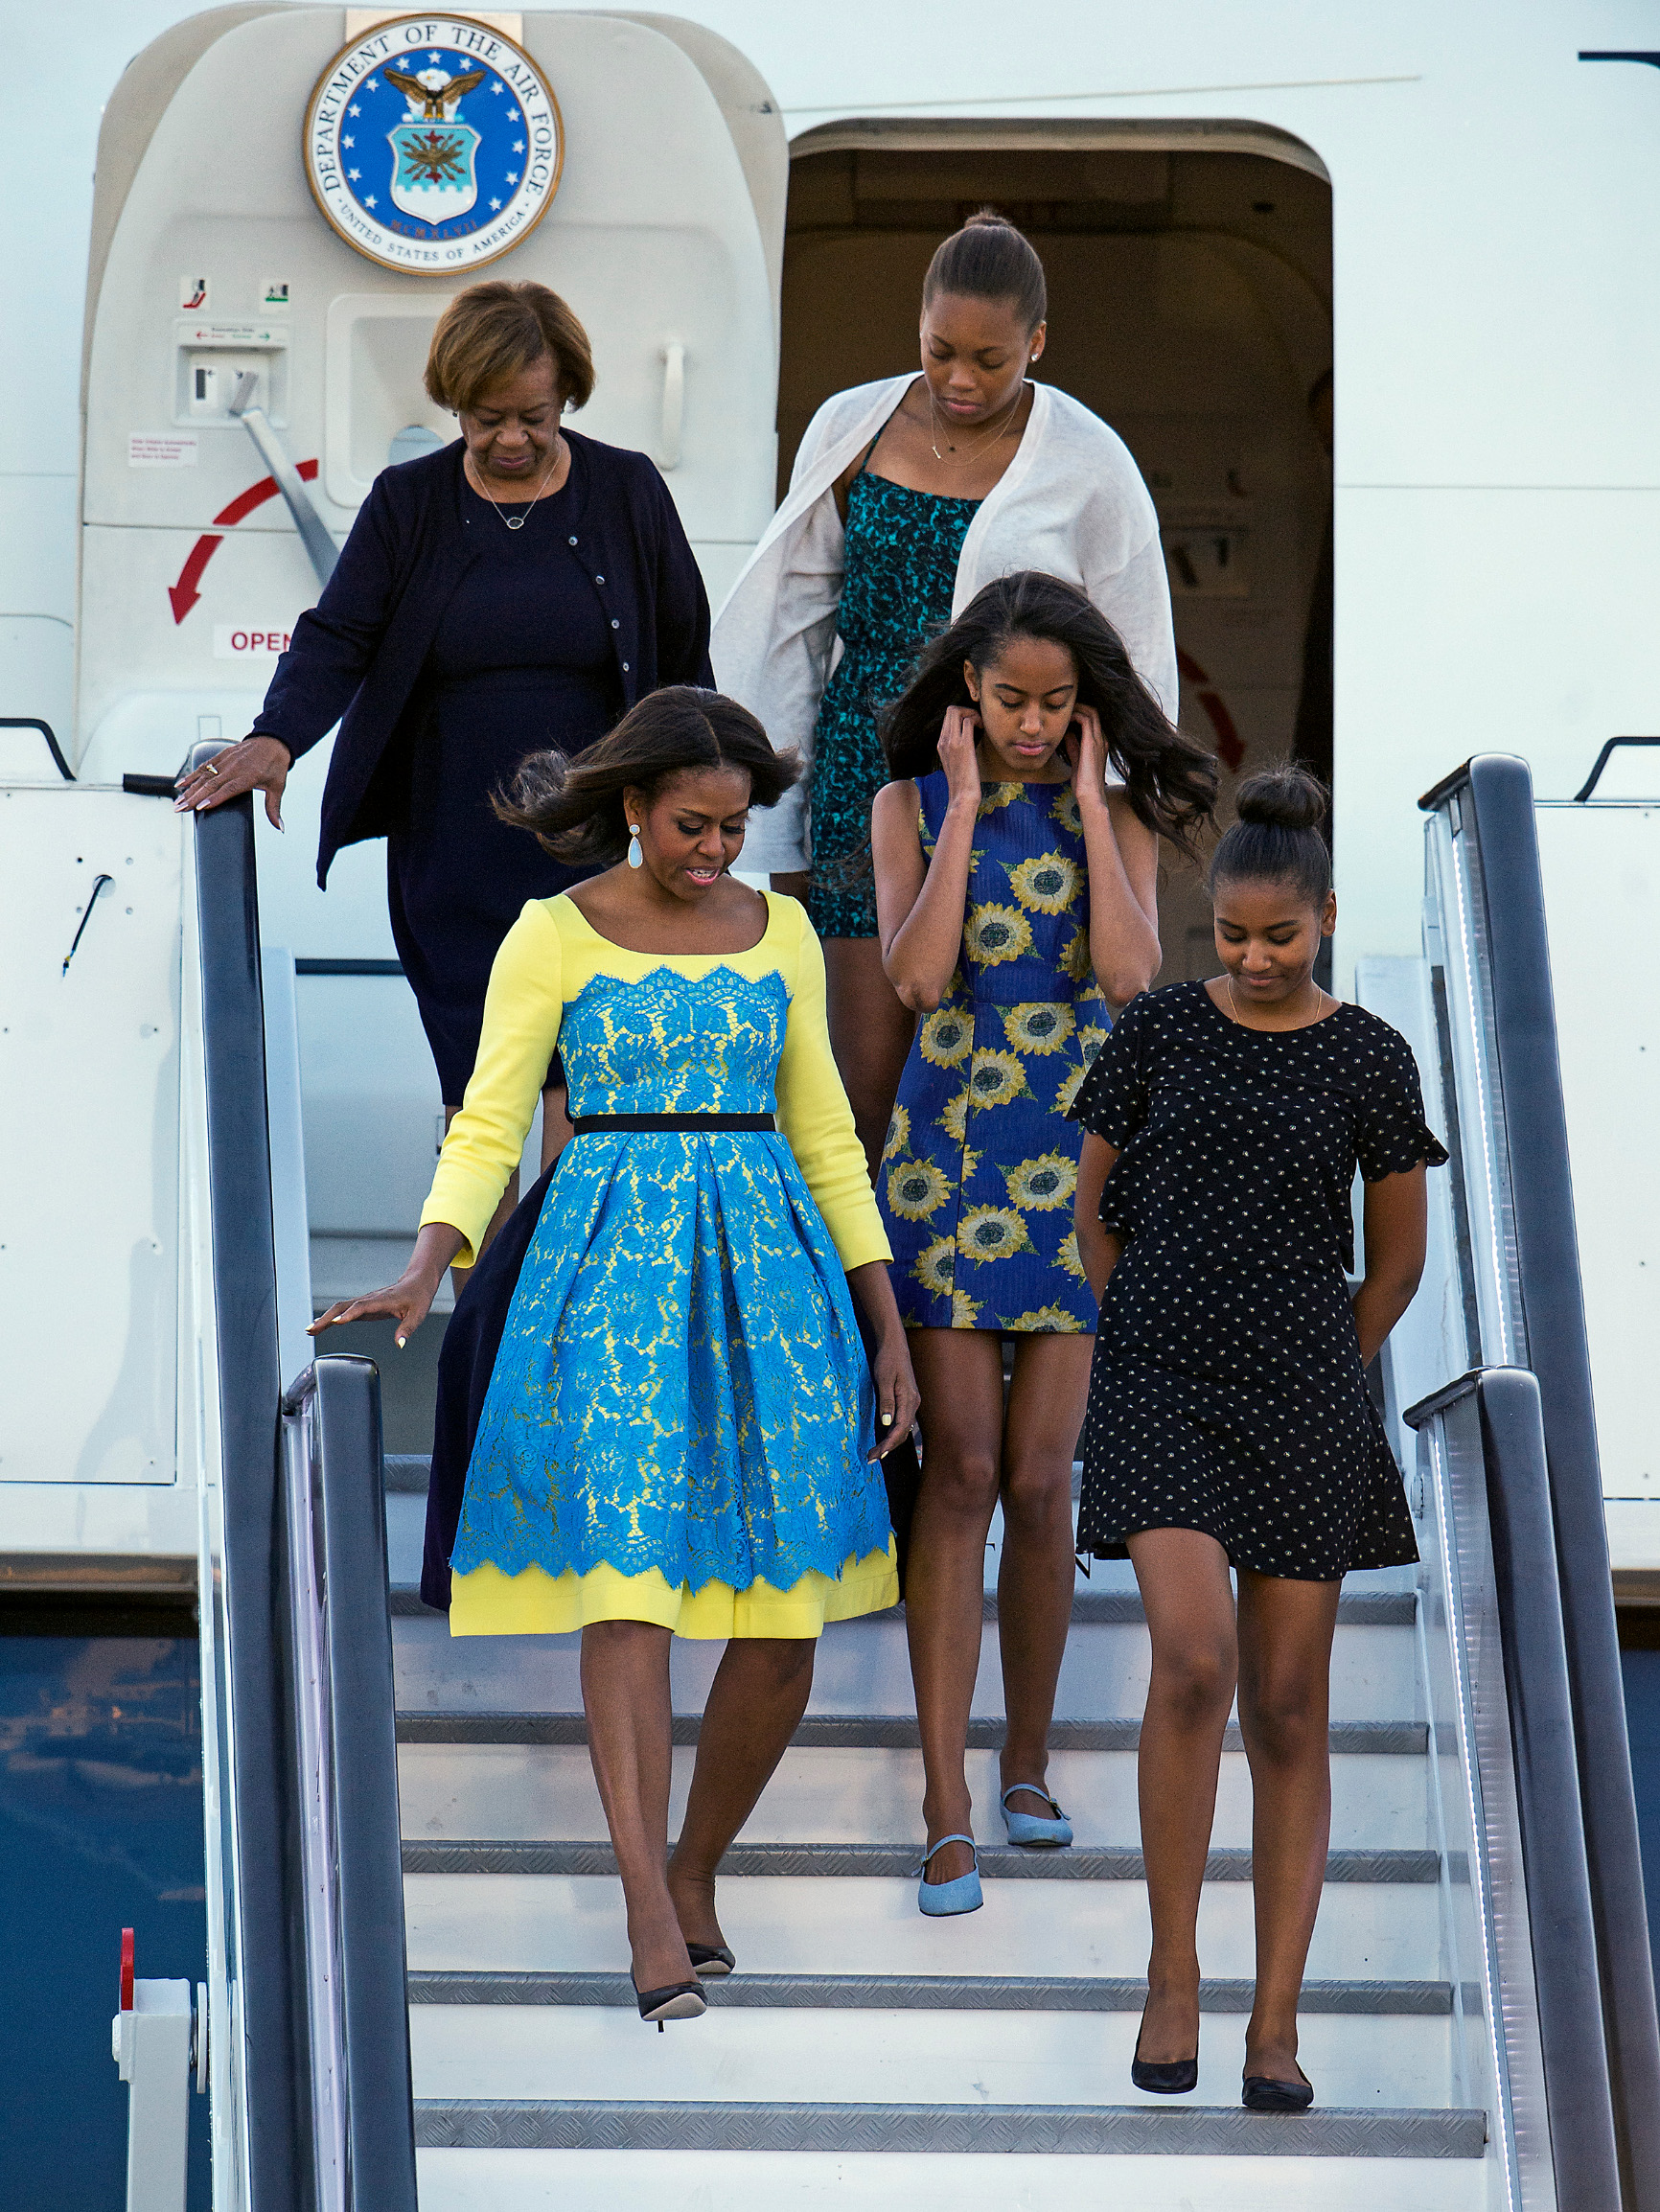 15/06/2015. Stansted, UK. First Lady MICHELLE OBAMA arrives in the UK at Stansted Airport accompanied by her mother, Marian Robinson, and daughters Malia and Sasha for the start of a three day visit to the UK. During the visit the First Lady and her family will meet with students at Mulberrry School for Girls and have Tea with Prime Minister David Cameron and Samantha Cameron., Image: 249845652, License: Rights-managed, Restrictions: *** UK Out ***, Model Release: no, Credit line: Ben Cawthra / ddp USA / Profimedia